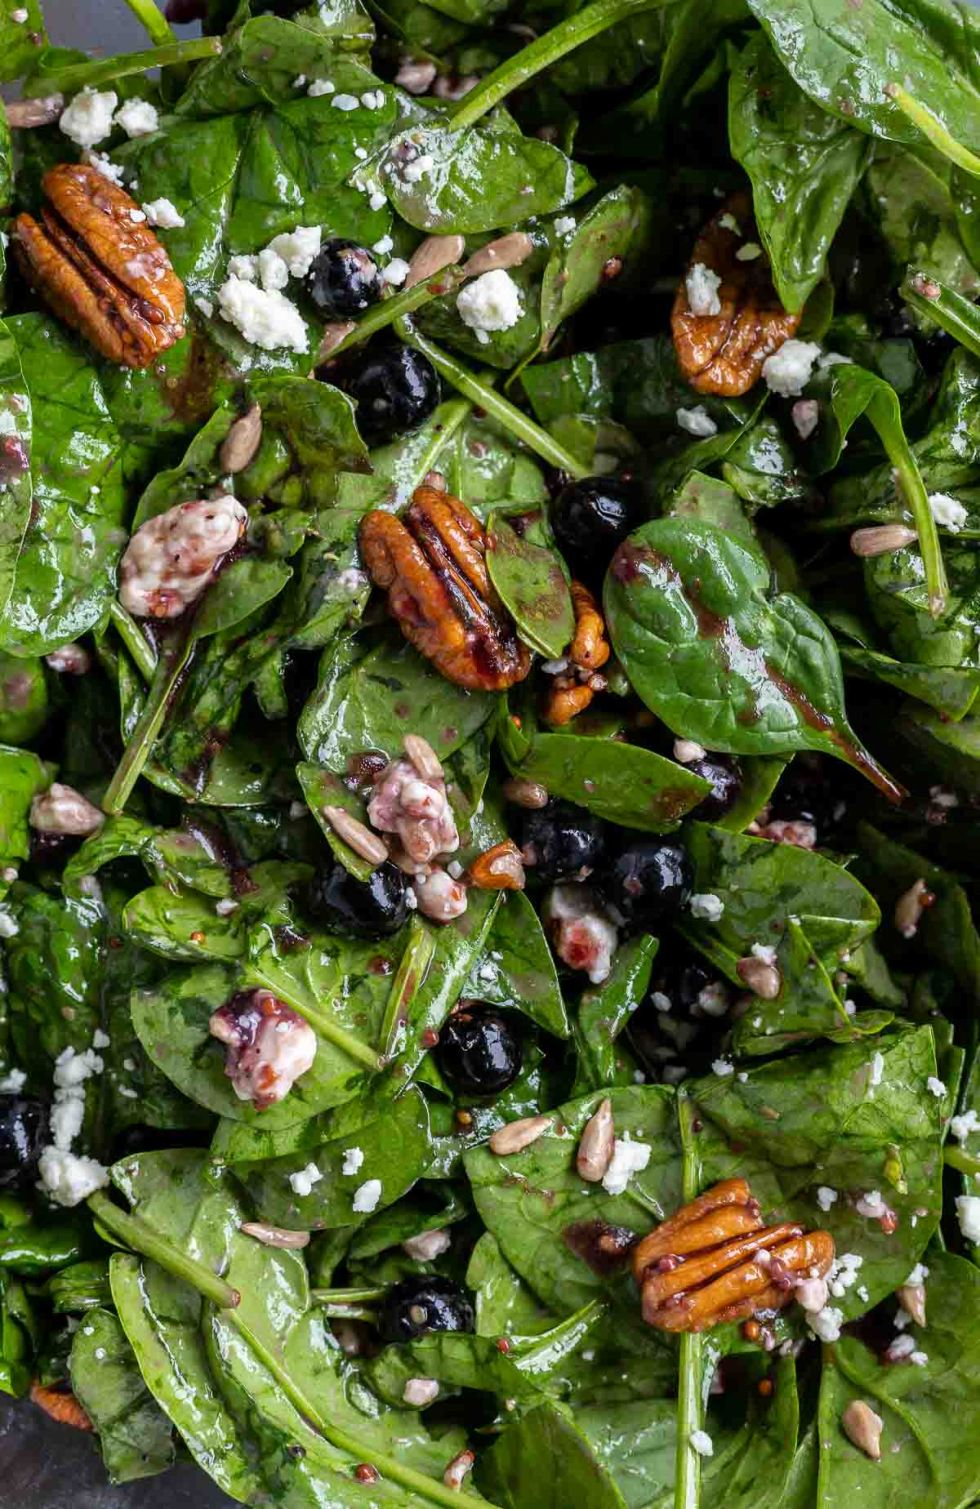 prepared salad with spinach, blueberries, pecans and cheese crumbles